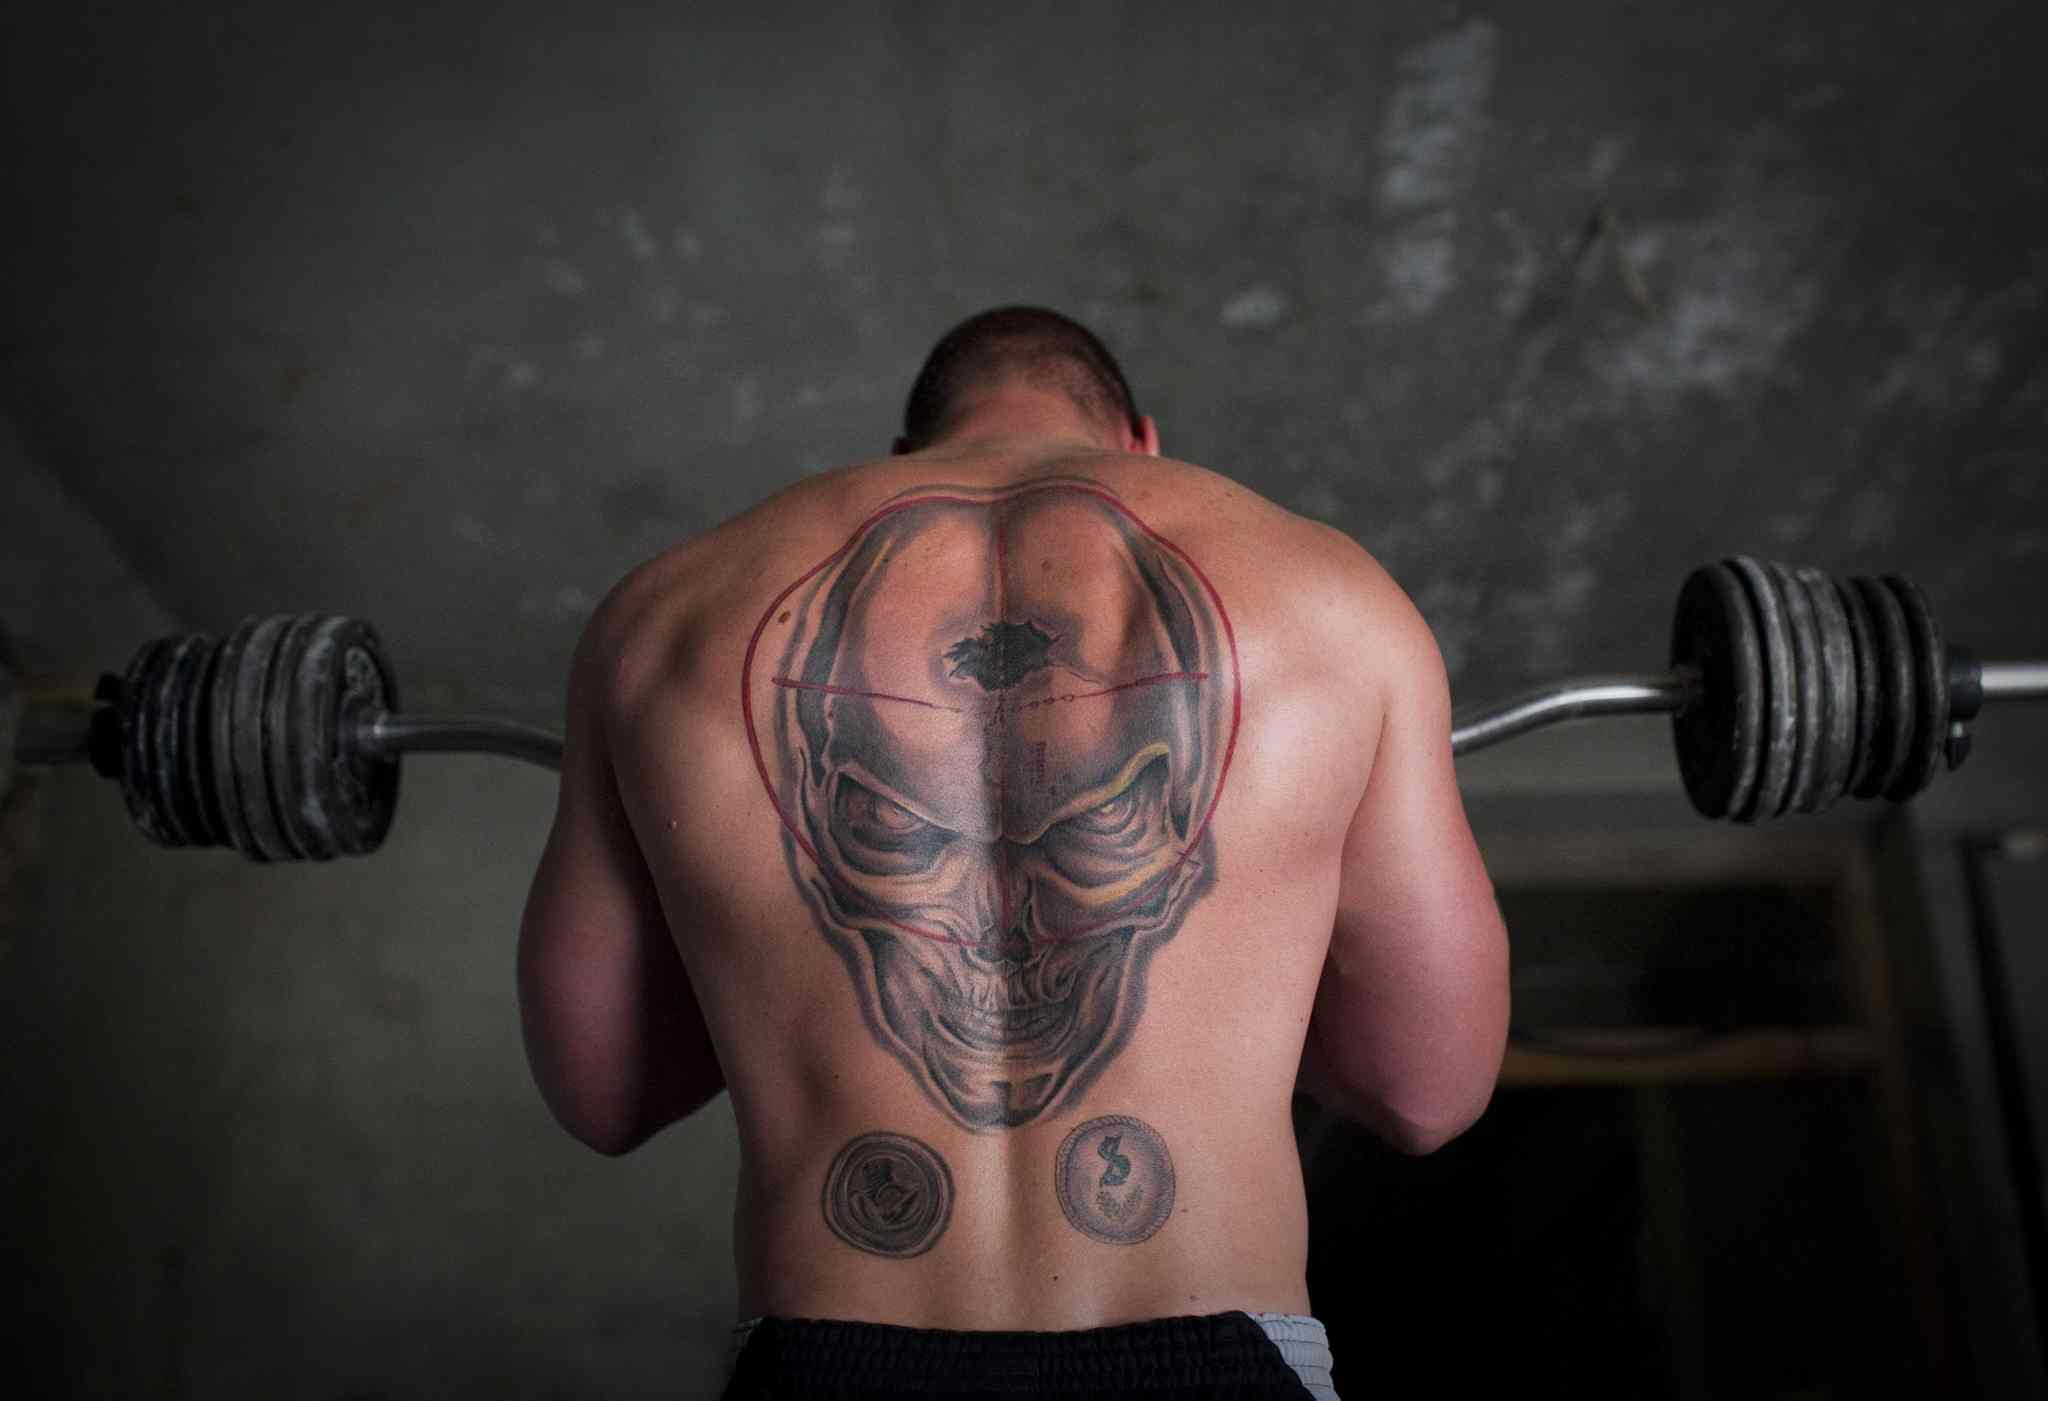 Sept, 17, 2011: A German soldier lifts weights at his combat outpost in Char Darah, outside Kunduz, Afghanistan.